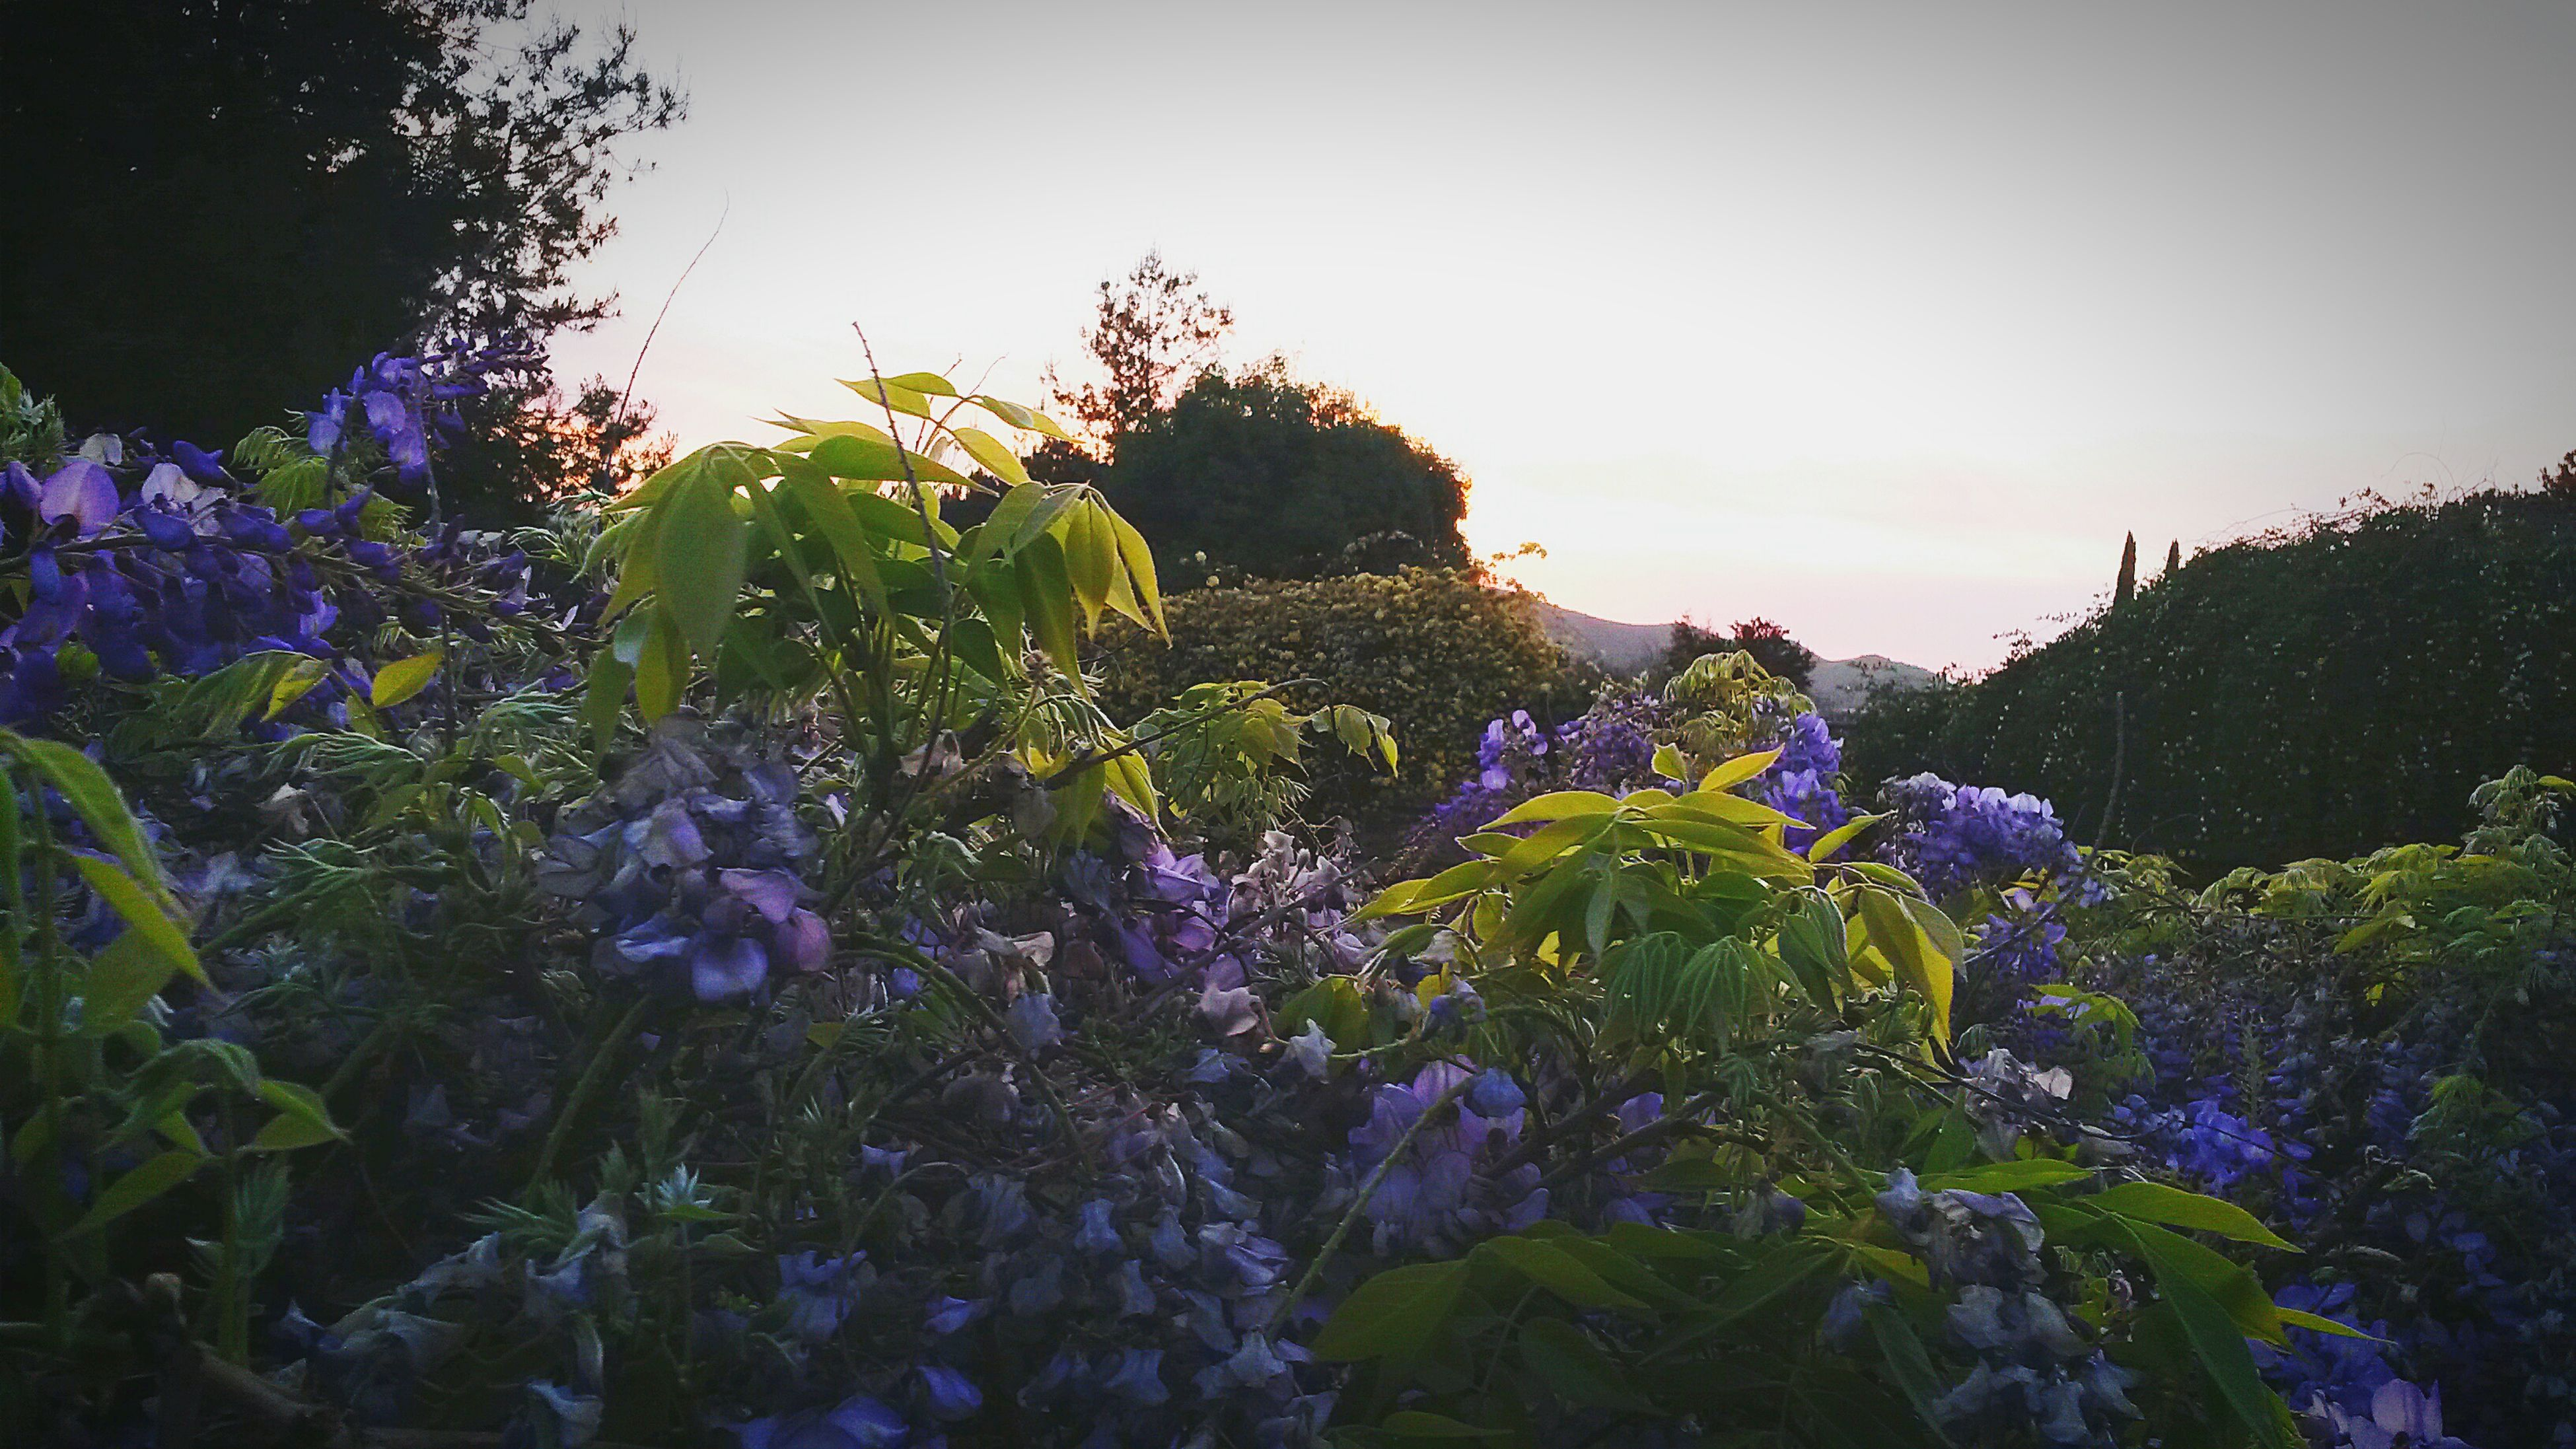 flower, growth, beauty in nature, freshness, plant, purple, fragility, nature, blooming, petal, clear sky, sky, blue, field, in bloom, tranquility, tree, tranquil scene, flower head, outdoors